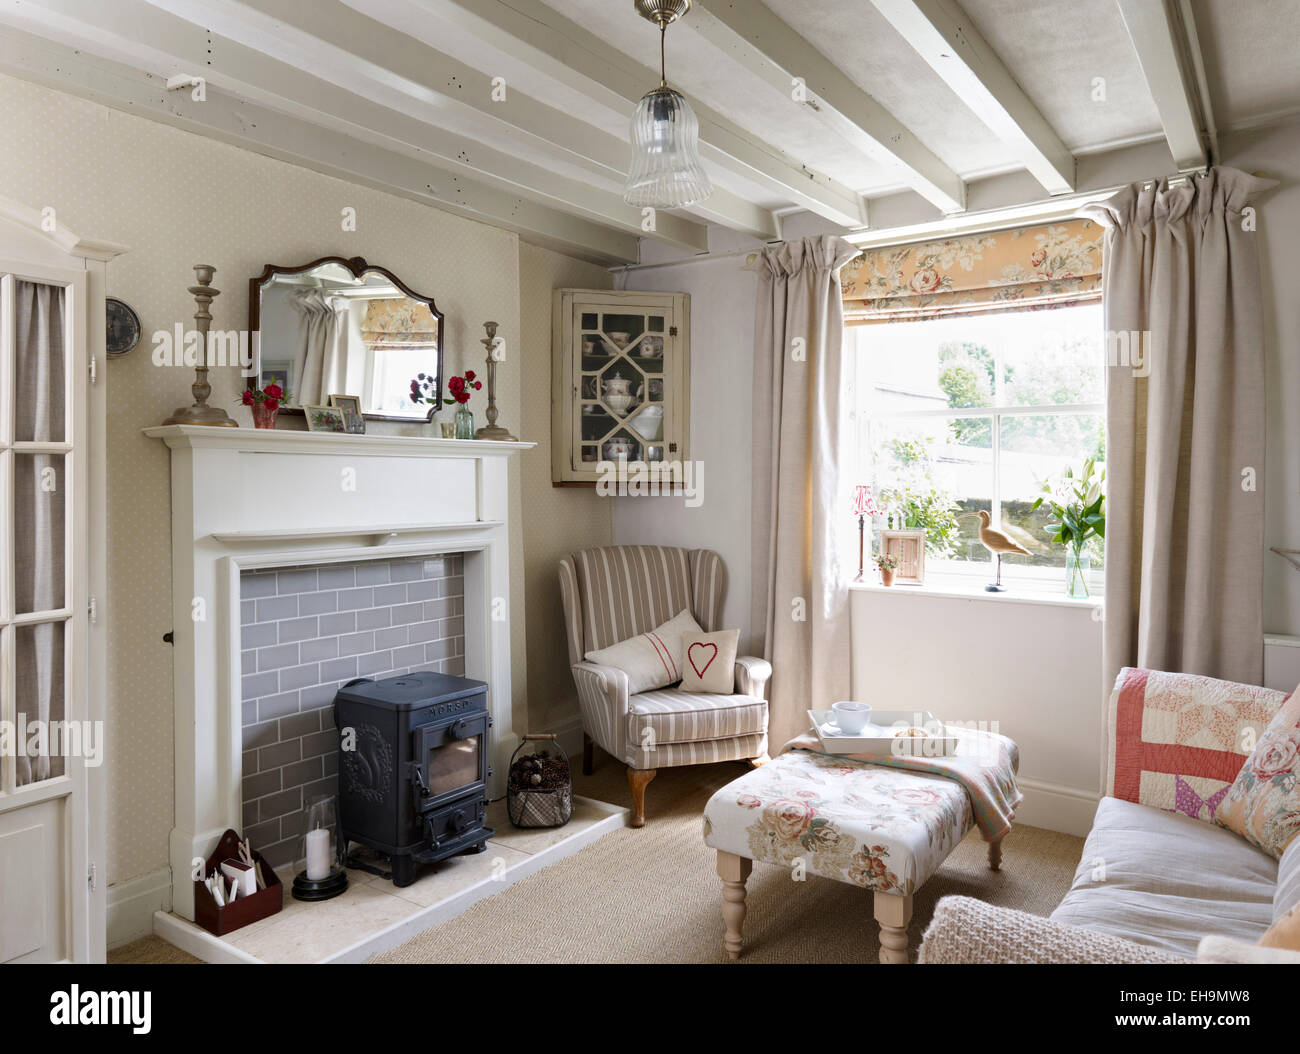 Room With Tiled Stove Stock Photos & Room With Tiled Stove Stock ...